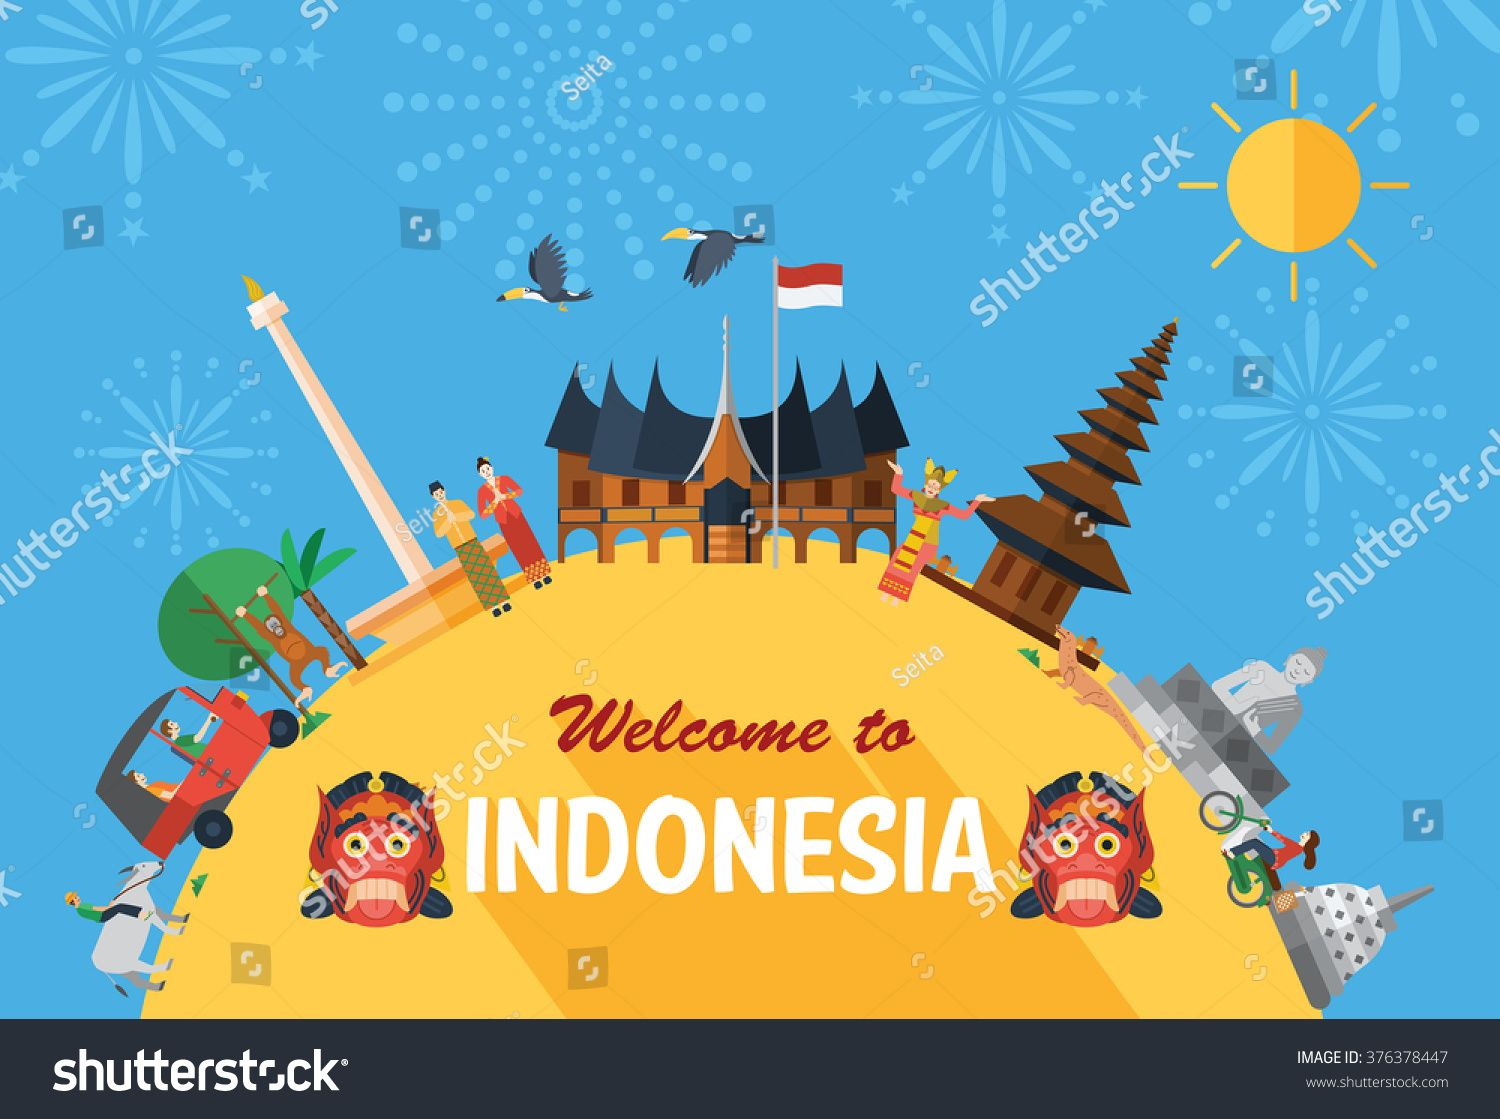 Flat design Indonesia icons and landmarks with